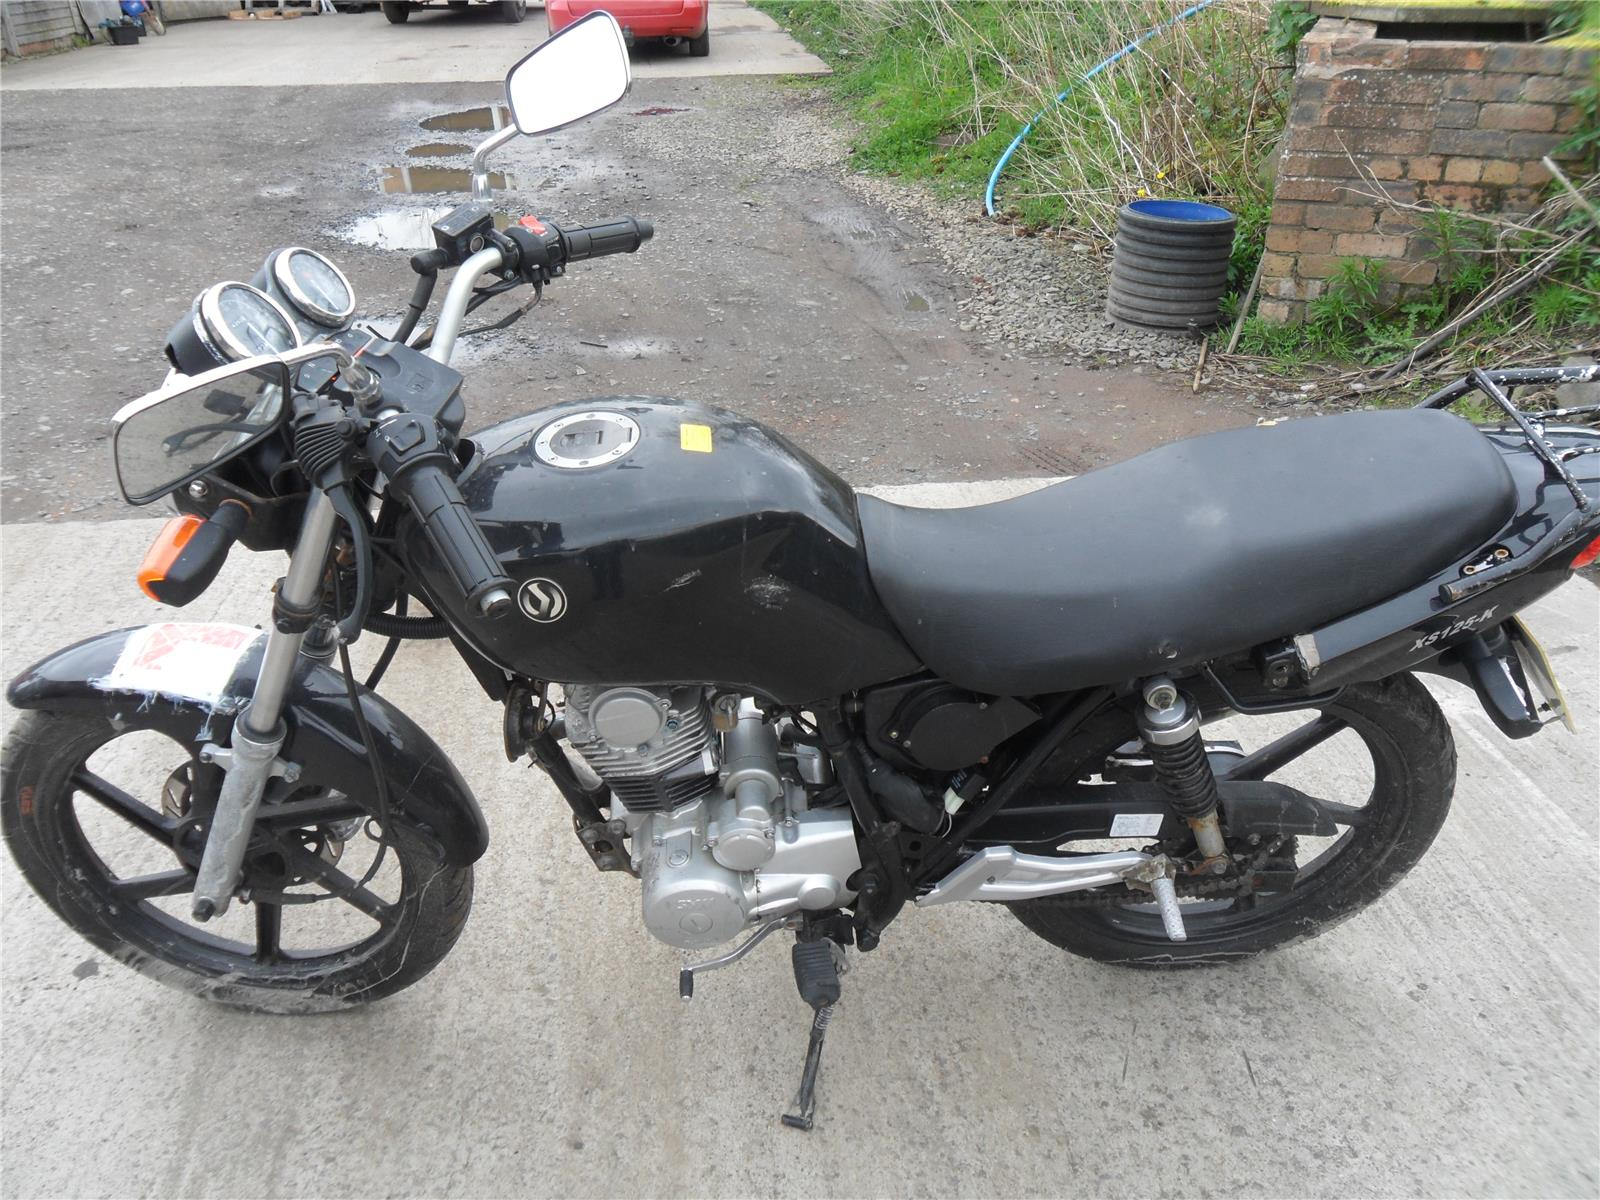 2011 Sym XS 125 Road (Petrol / Manual) breaking for used and spare